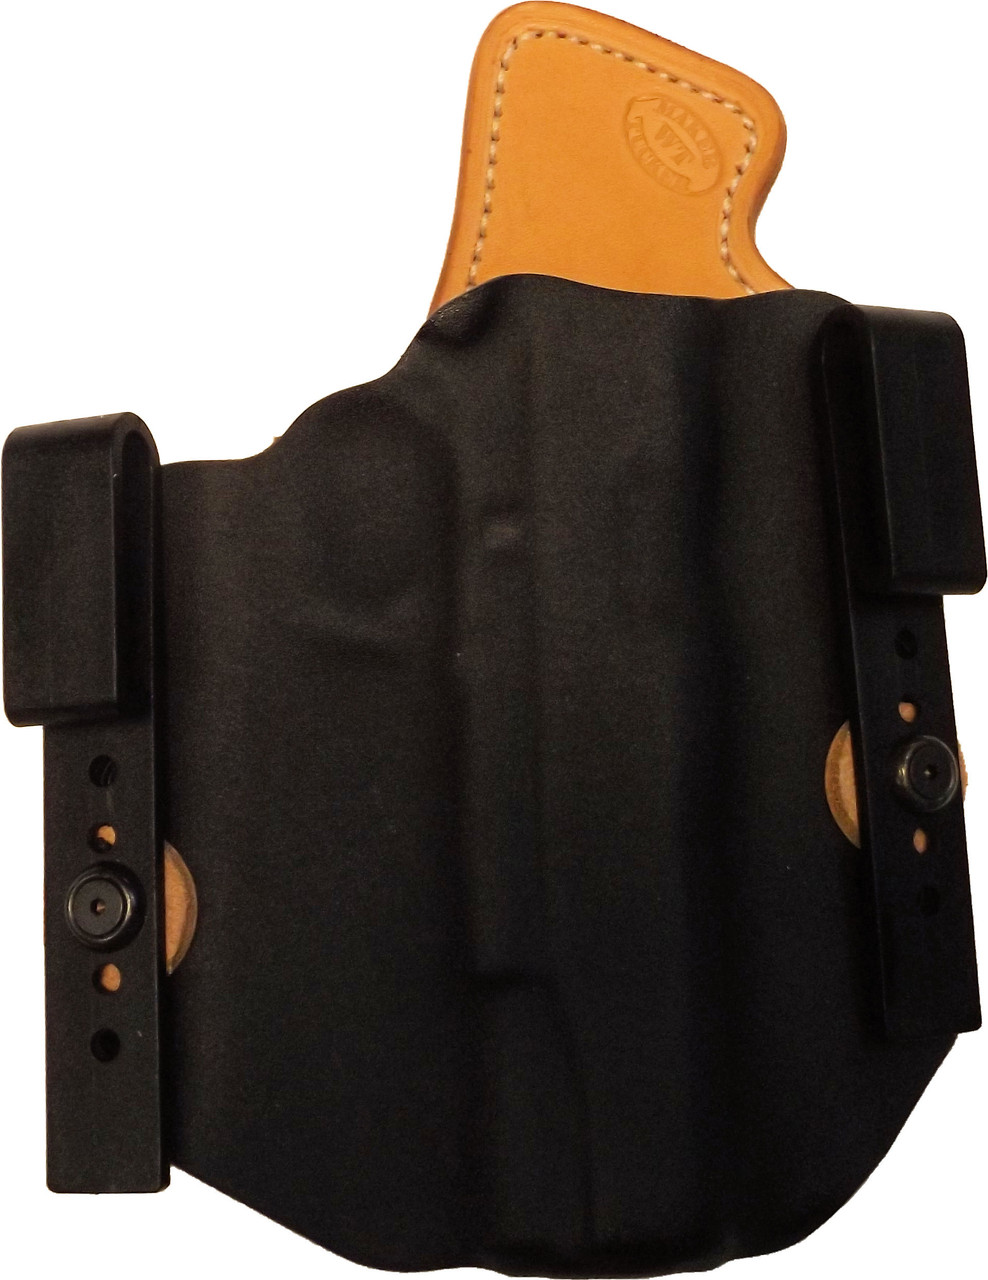 Solution - LLKLBL with  IWB mounting clip set #1